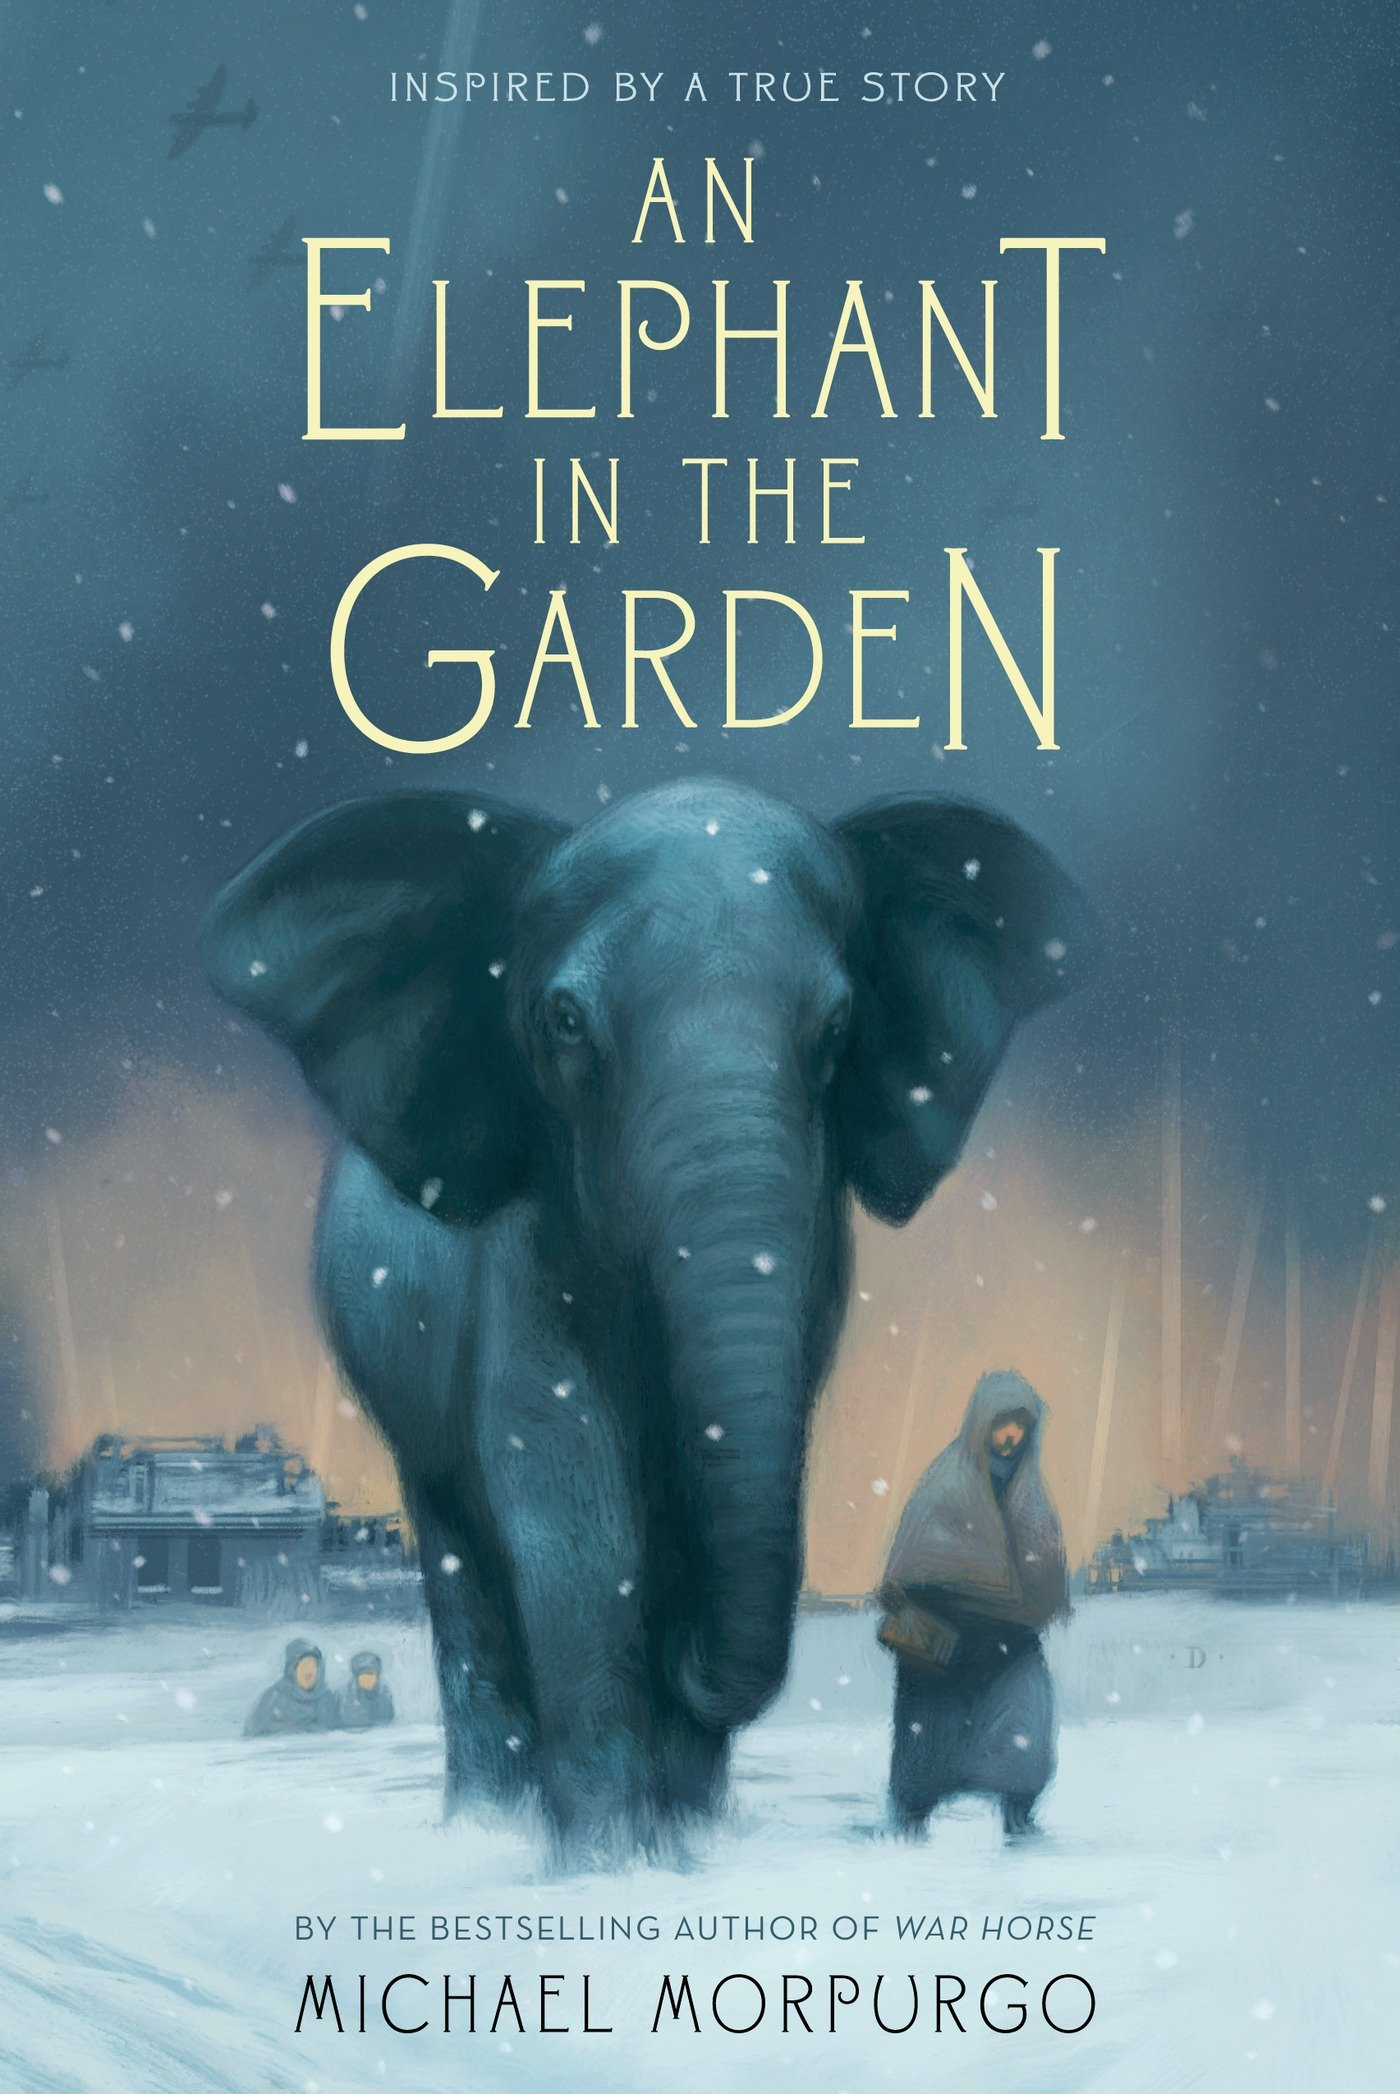 an elephant in the garden inspired by a true story michael  an elephant in the garden inspired by a true story michael morpurgo 9781250034144 com books